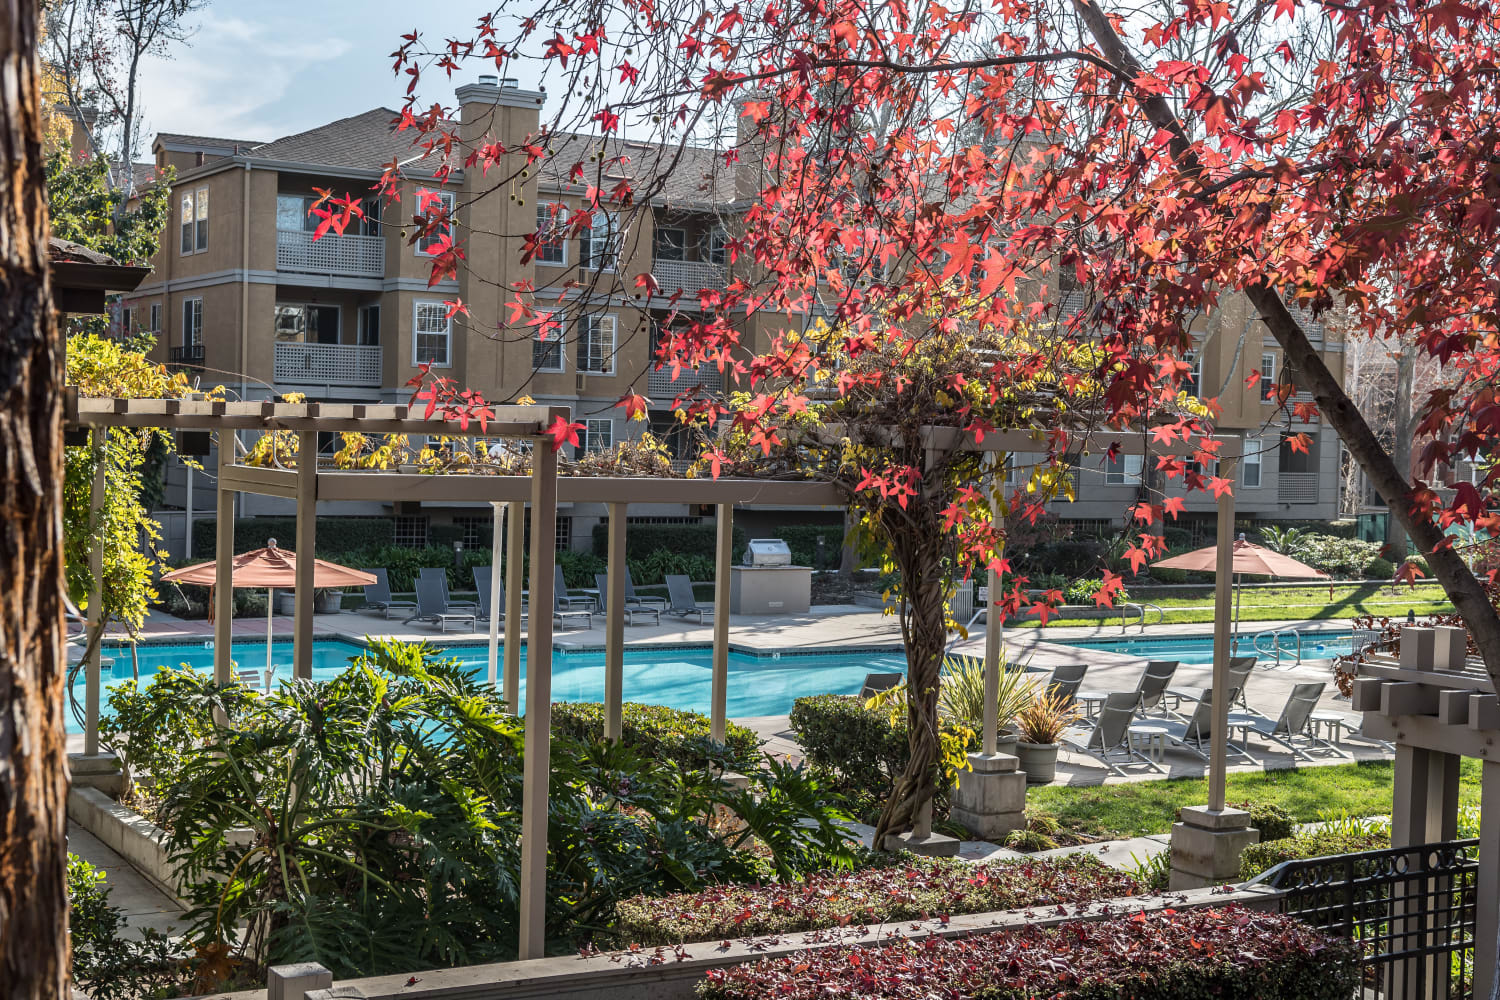 Sparkling swimming pool at Bella Vista Apartments in Santa Clara, California